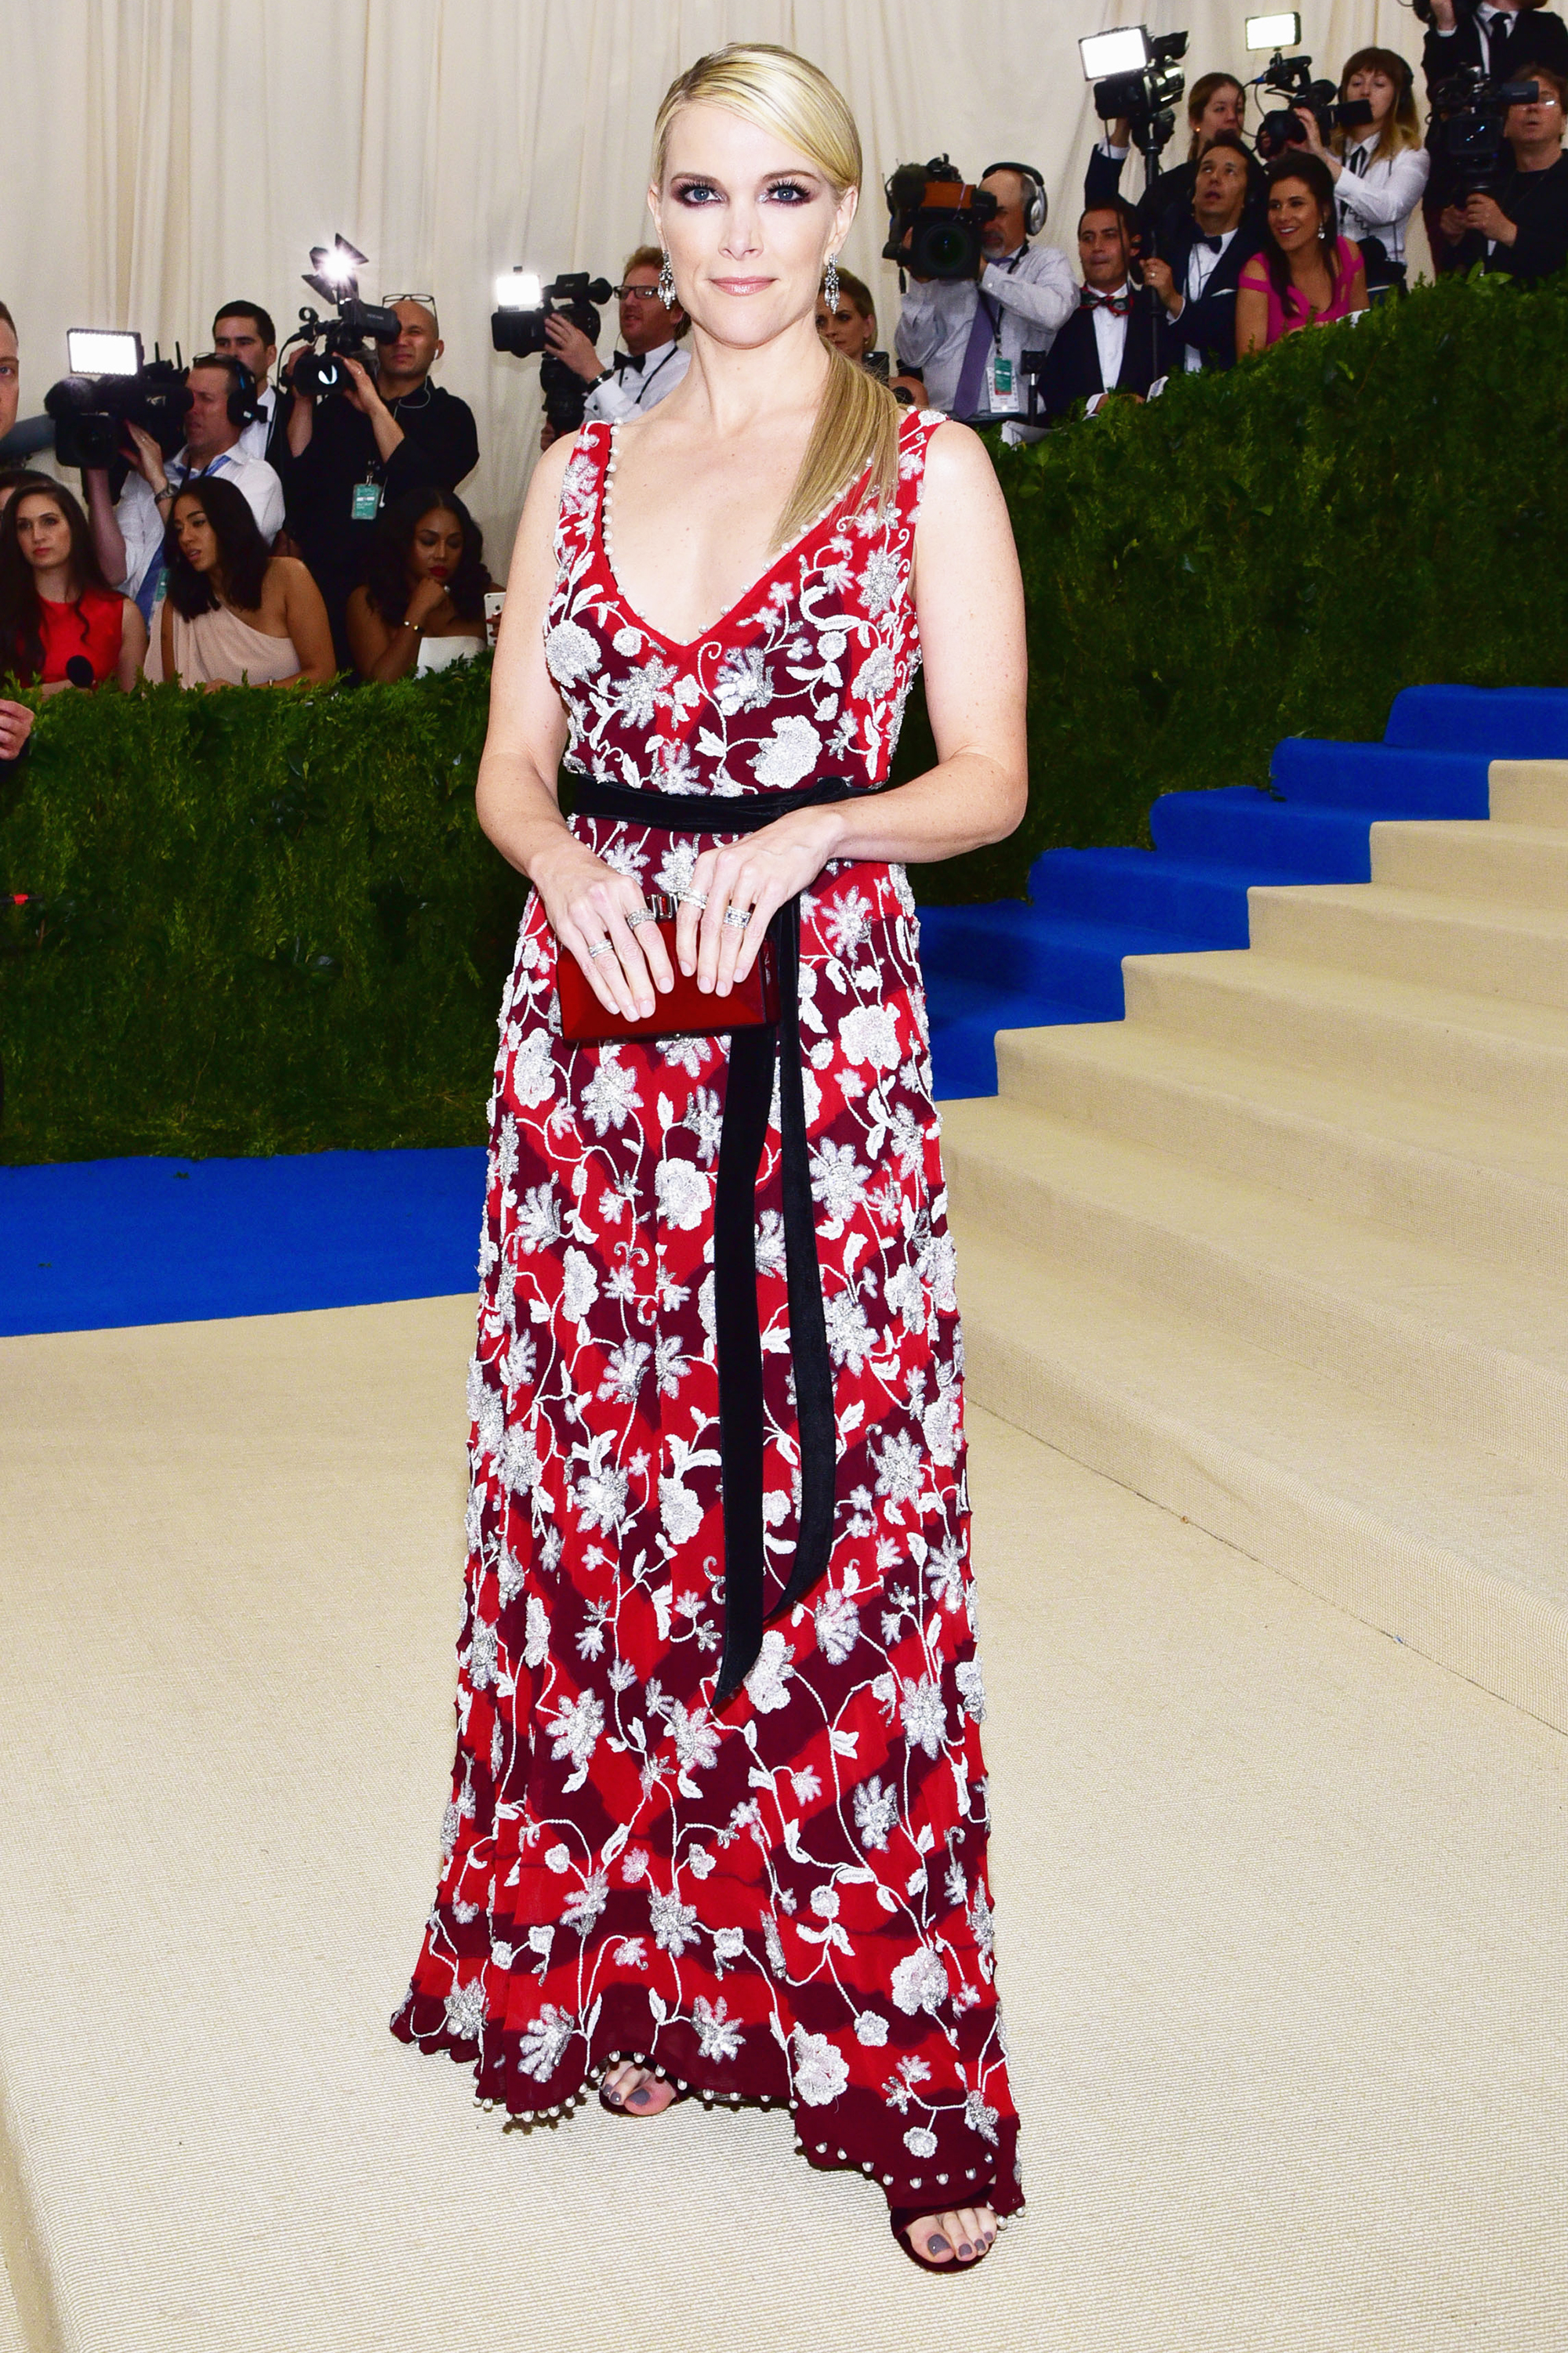 Megyn Kelly attends The Metropolitan Museum of Art's Costume Institute benefit gala celebrating the opening of the Rei Kawakubo/Comme des Garçons: Art of the In-Between exhibition in New York City, on May 1, 2017.